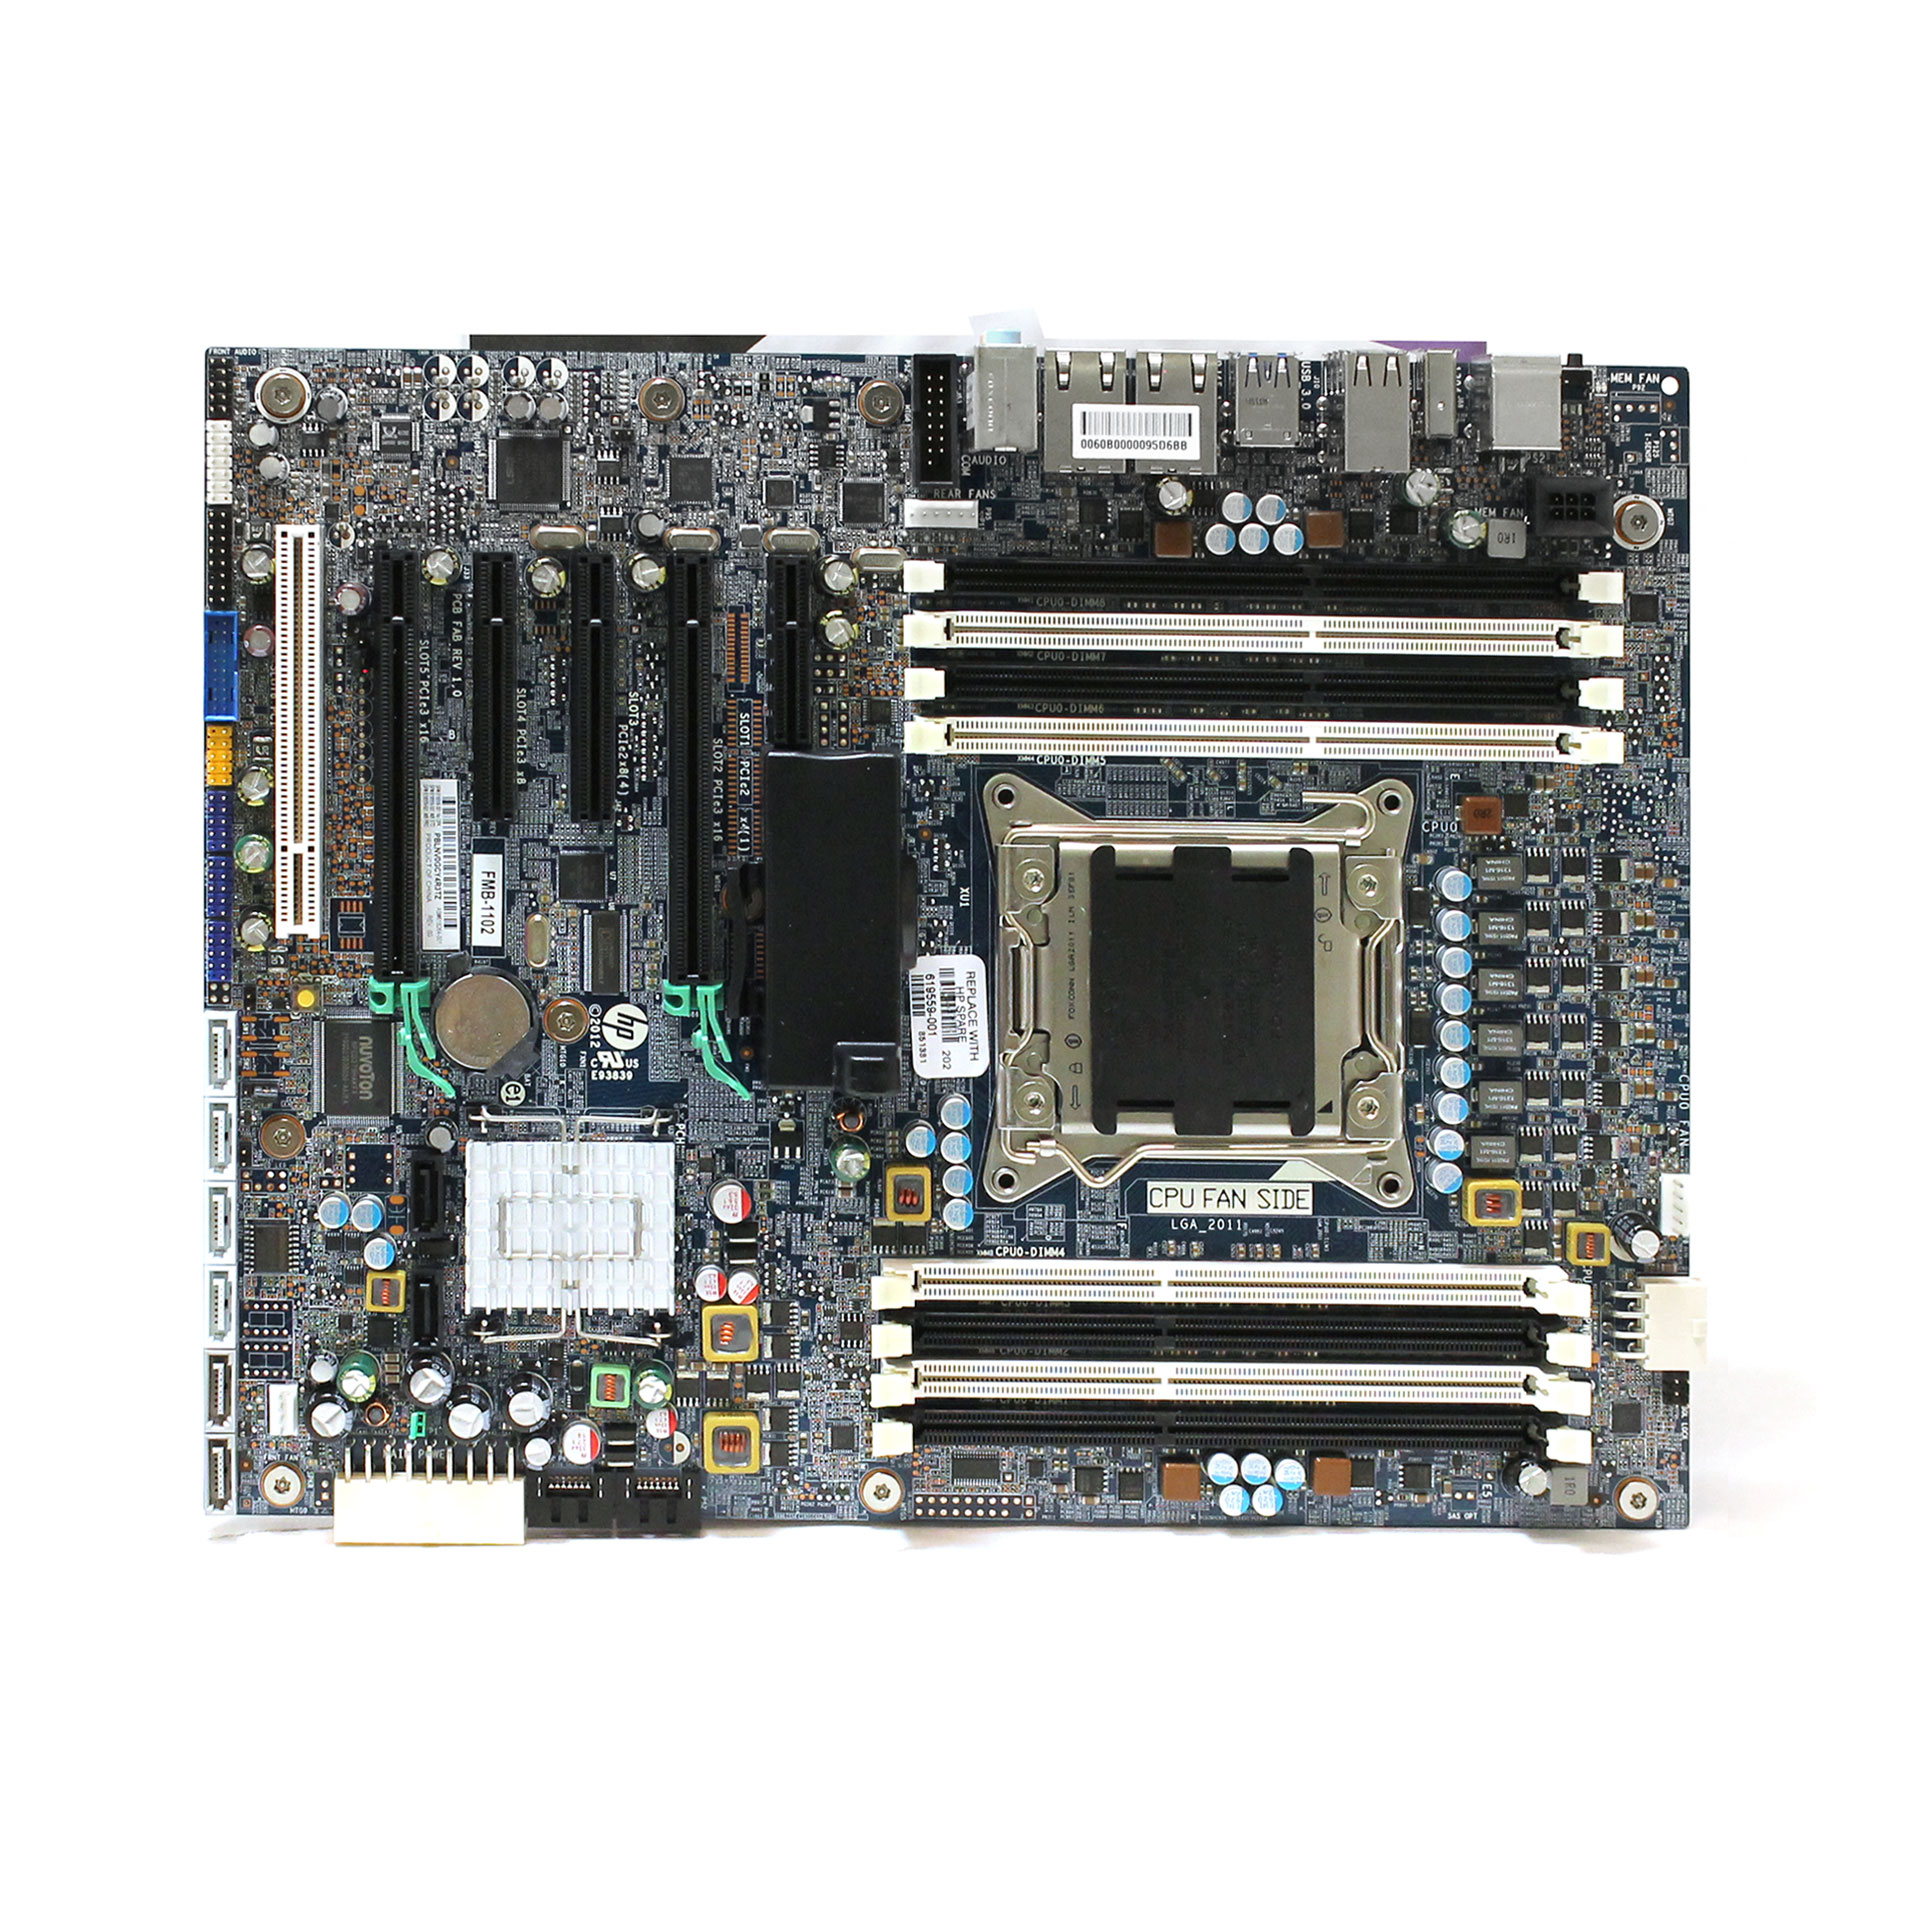 HP Z620 Desktop / PC Motherboard LGA2011 619559-001 618264-001